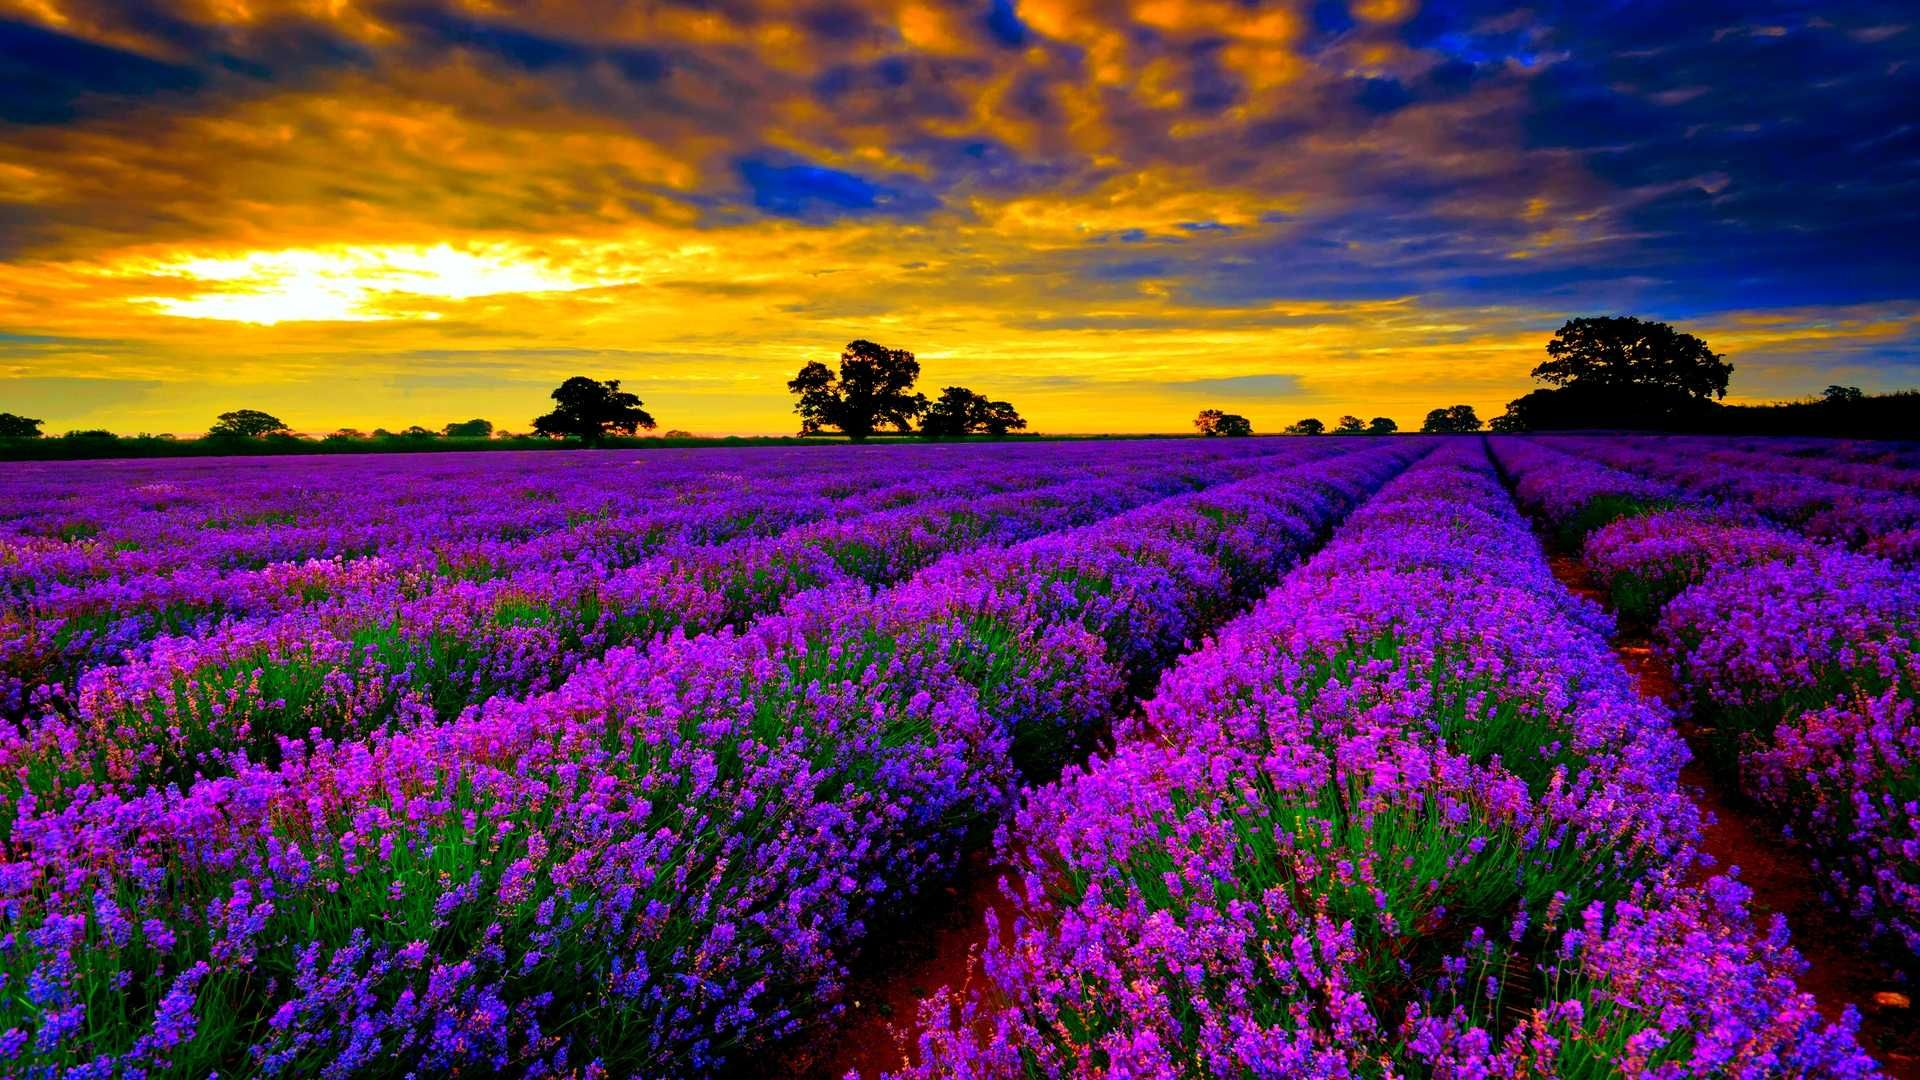 Lavender Fields HD Wallpapers Sunset wallpaper, Lavender